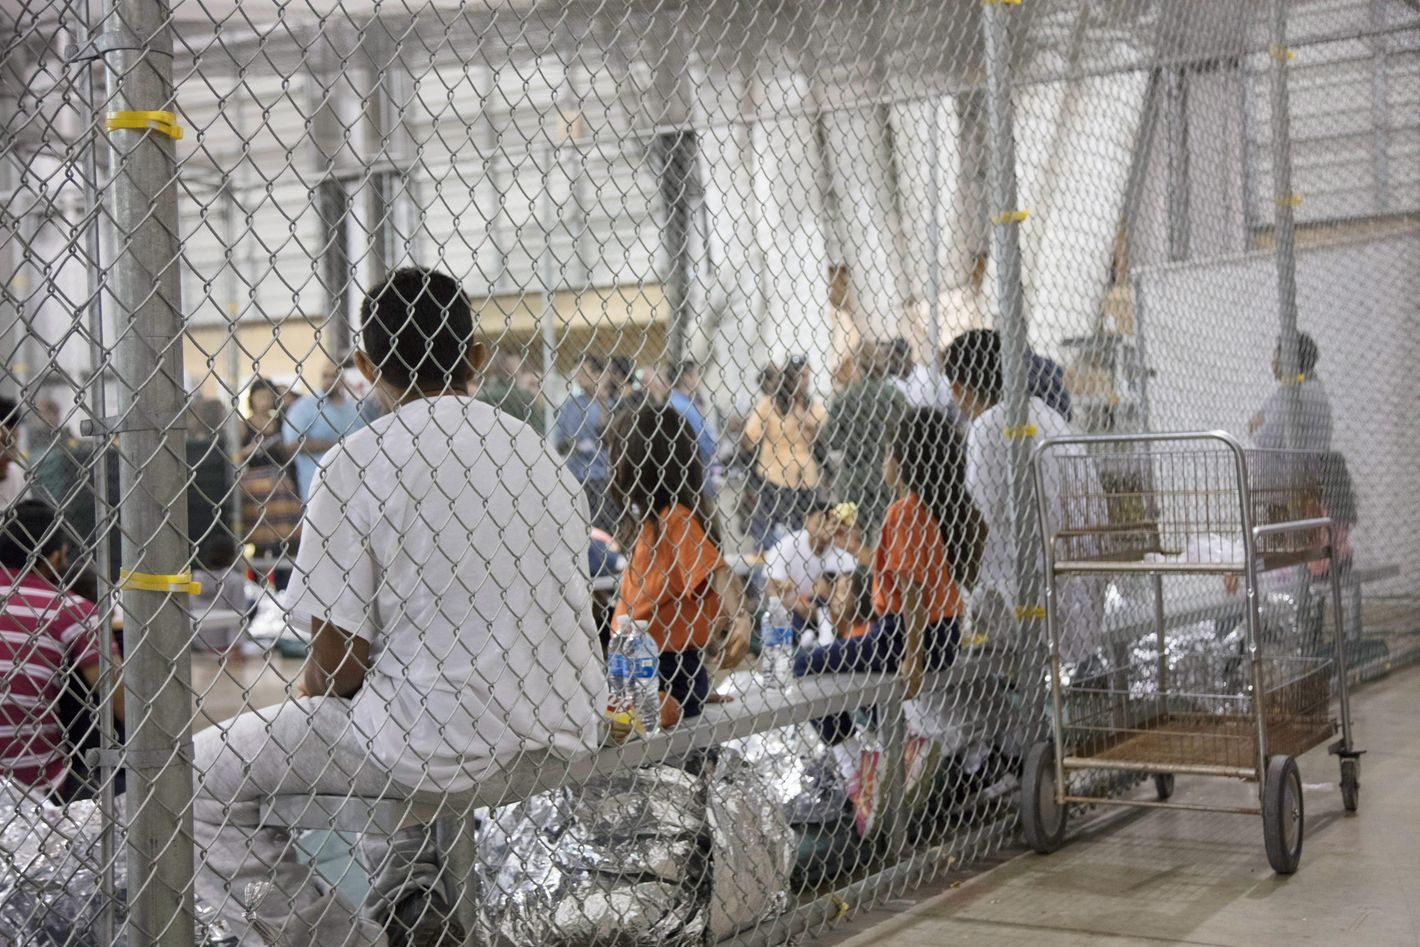 Treating Trauma Children Of Central City >> Detention Centers For Immigrant Children What To Know